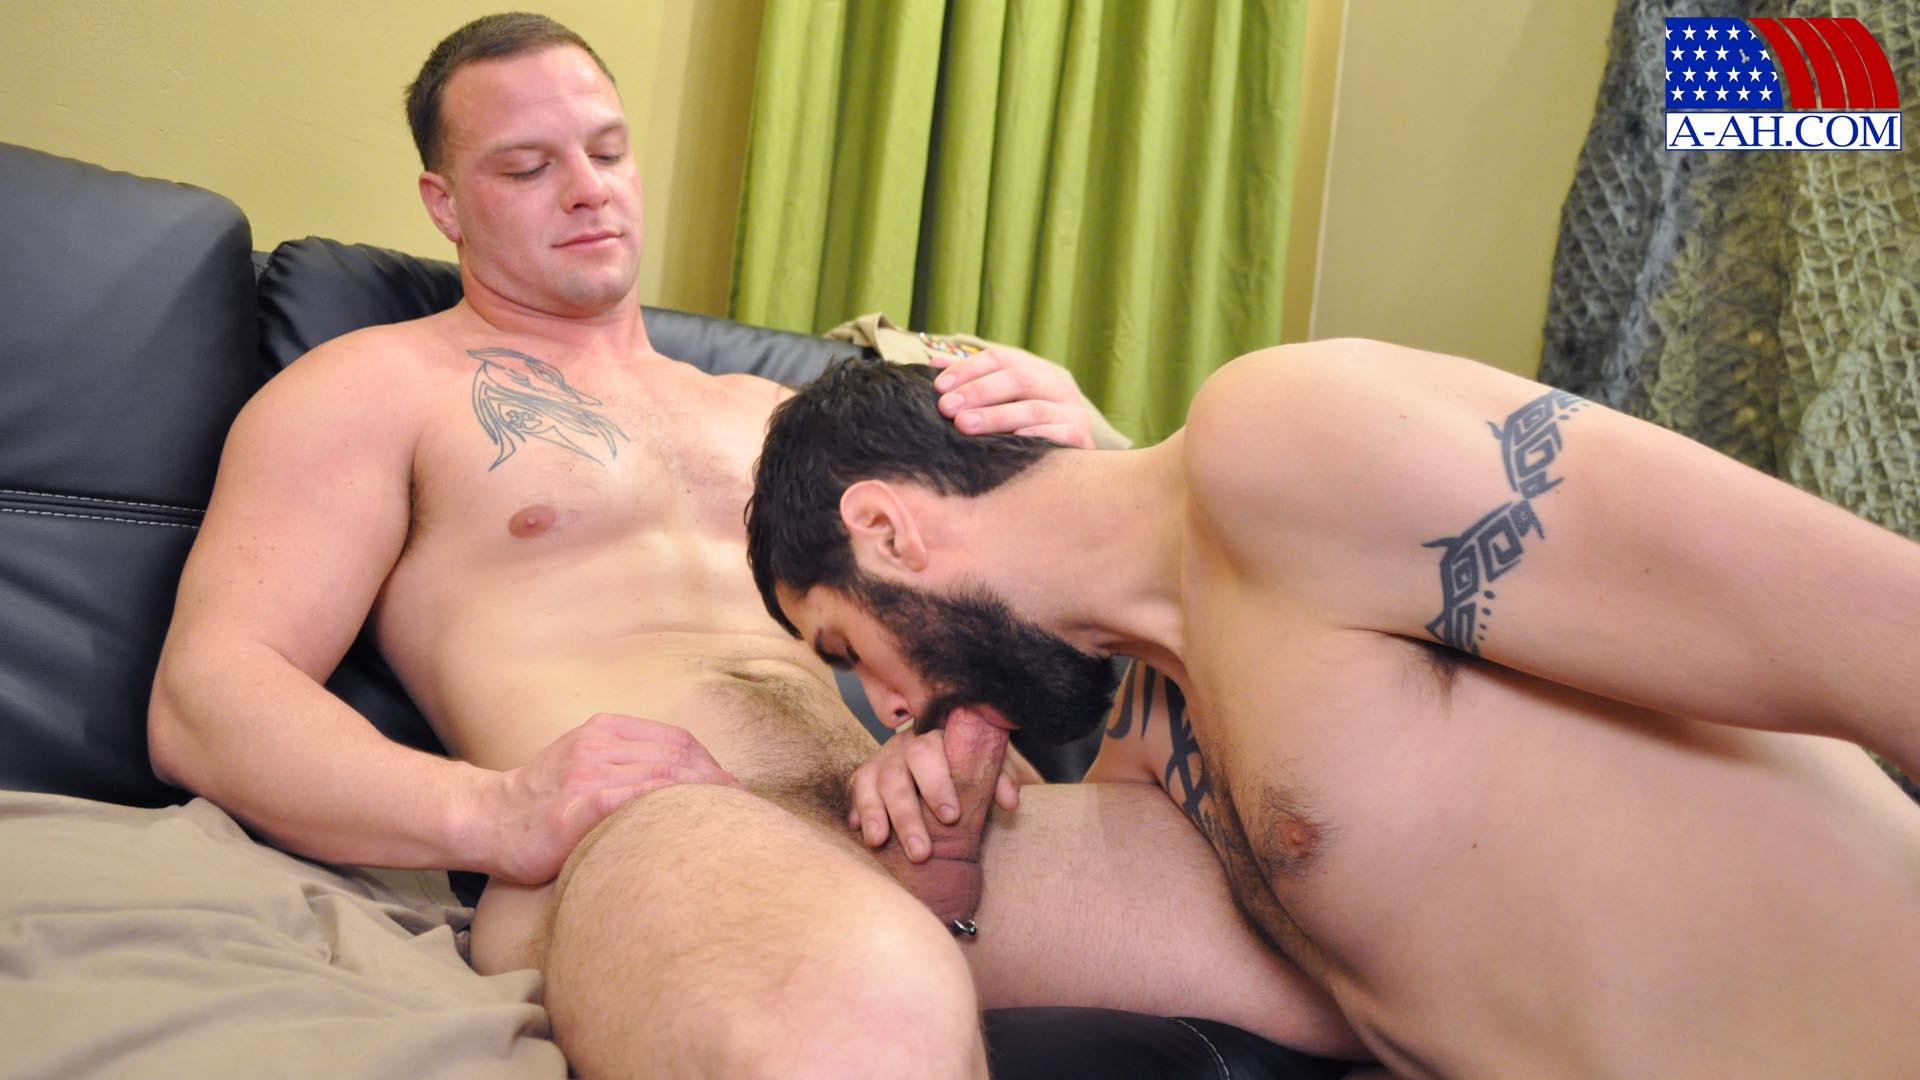 All-American-Heroes-PRIVATE-ANTONIO-AND-NAVY-CORPSMAN-LOGAN-Military-Guys-Sucking-Cock-Amateur-Gay-Porn-10 US Navy Corpsman Trades Blowjobs With A British Army Private